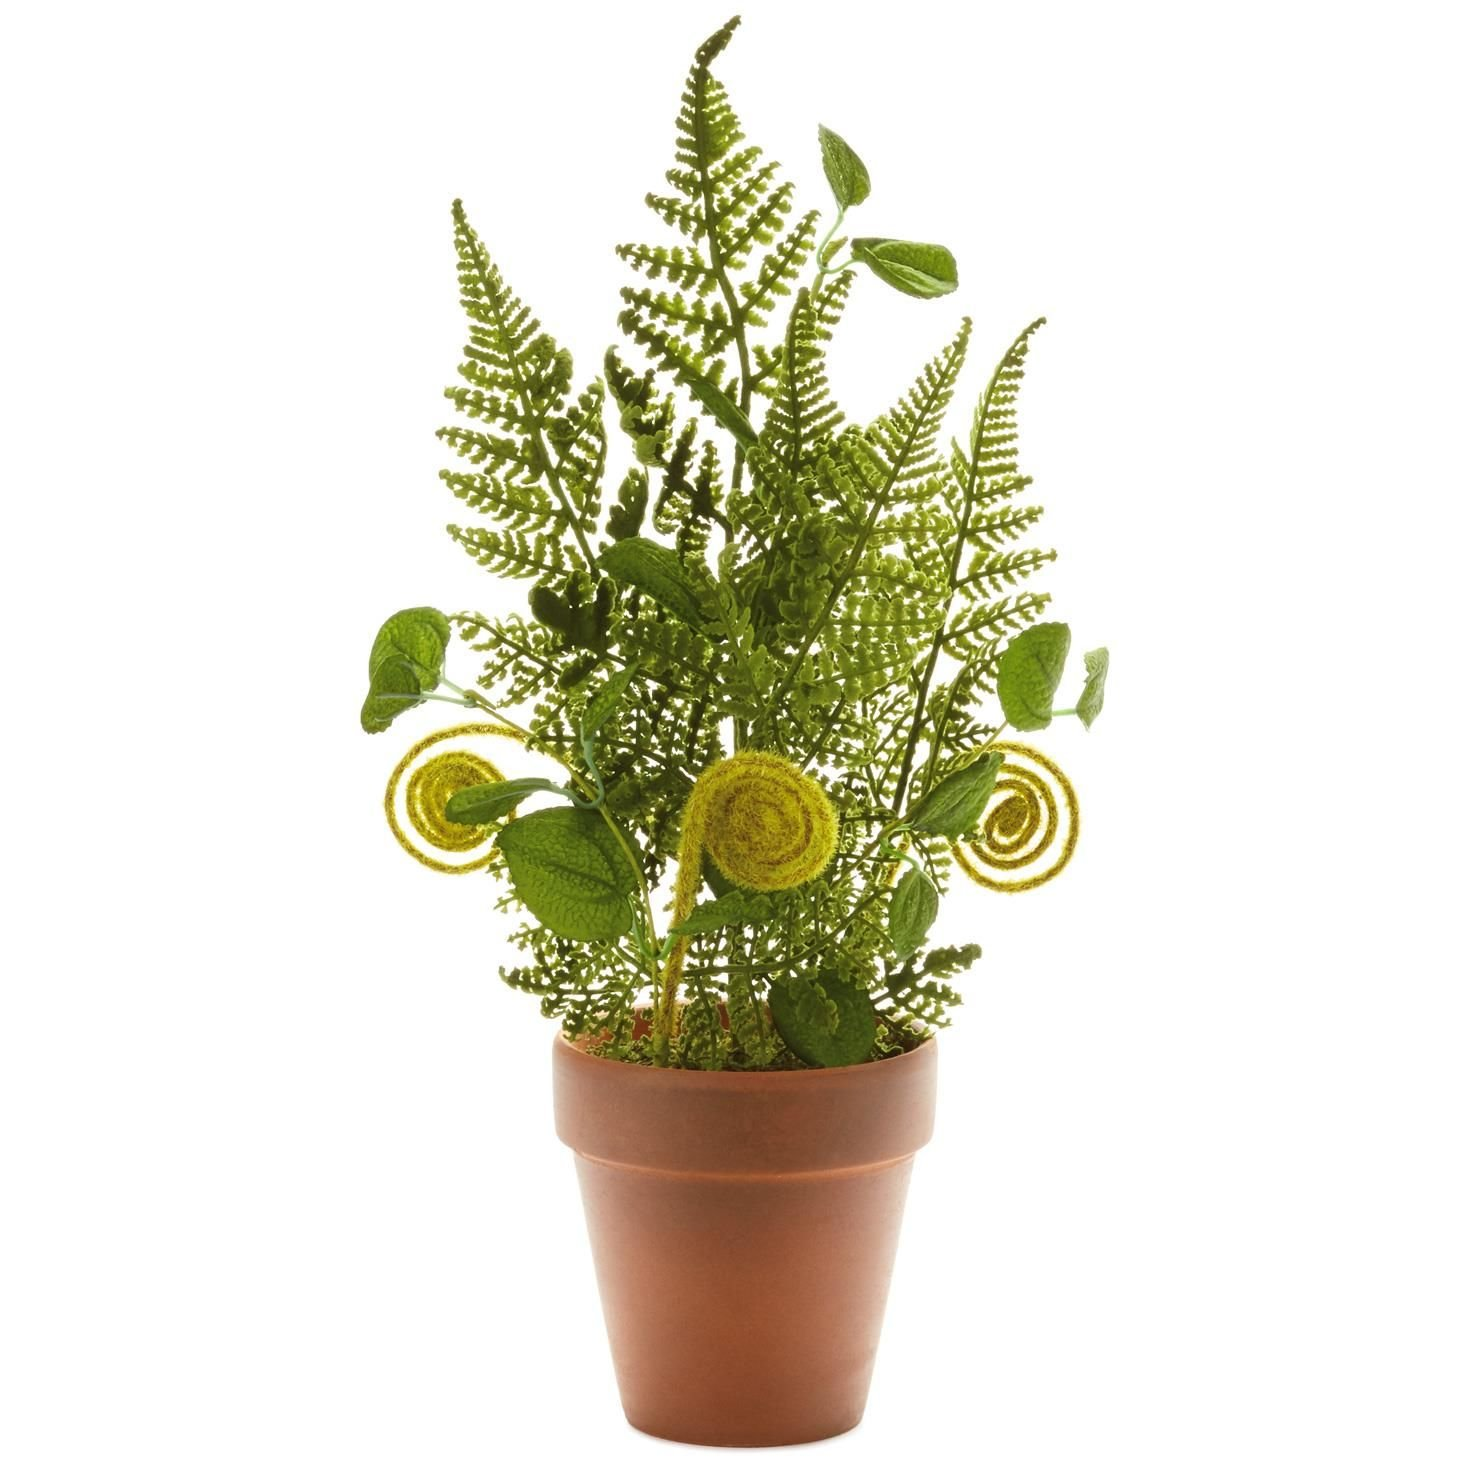 Fern Potted Artificial Plant Decoration, 14'' Decorative Accessories Animals & Nature